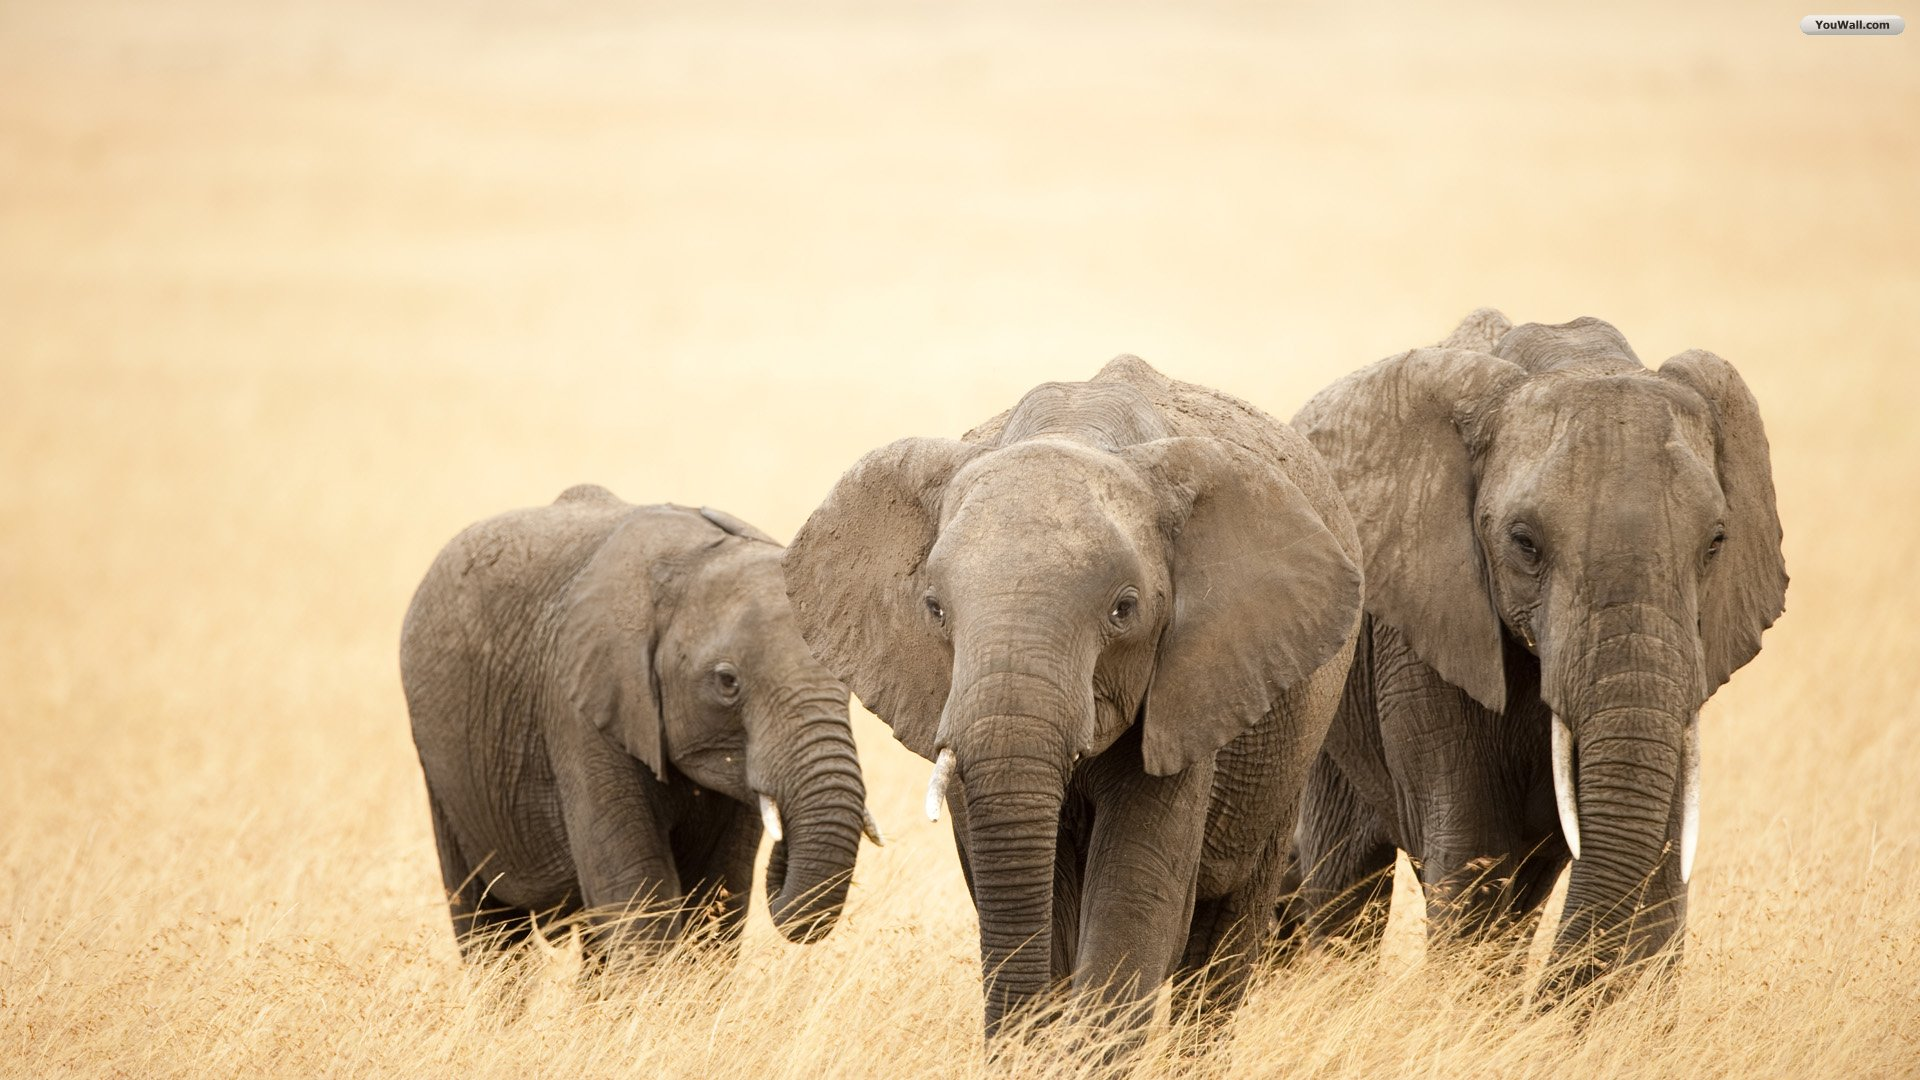 Cute Love Hd Wallpapers For Mobile Phones Elephant Wallpaper Android Phones 10955 Wallpaper